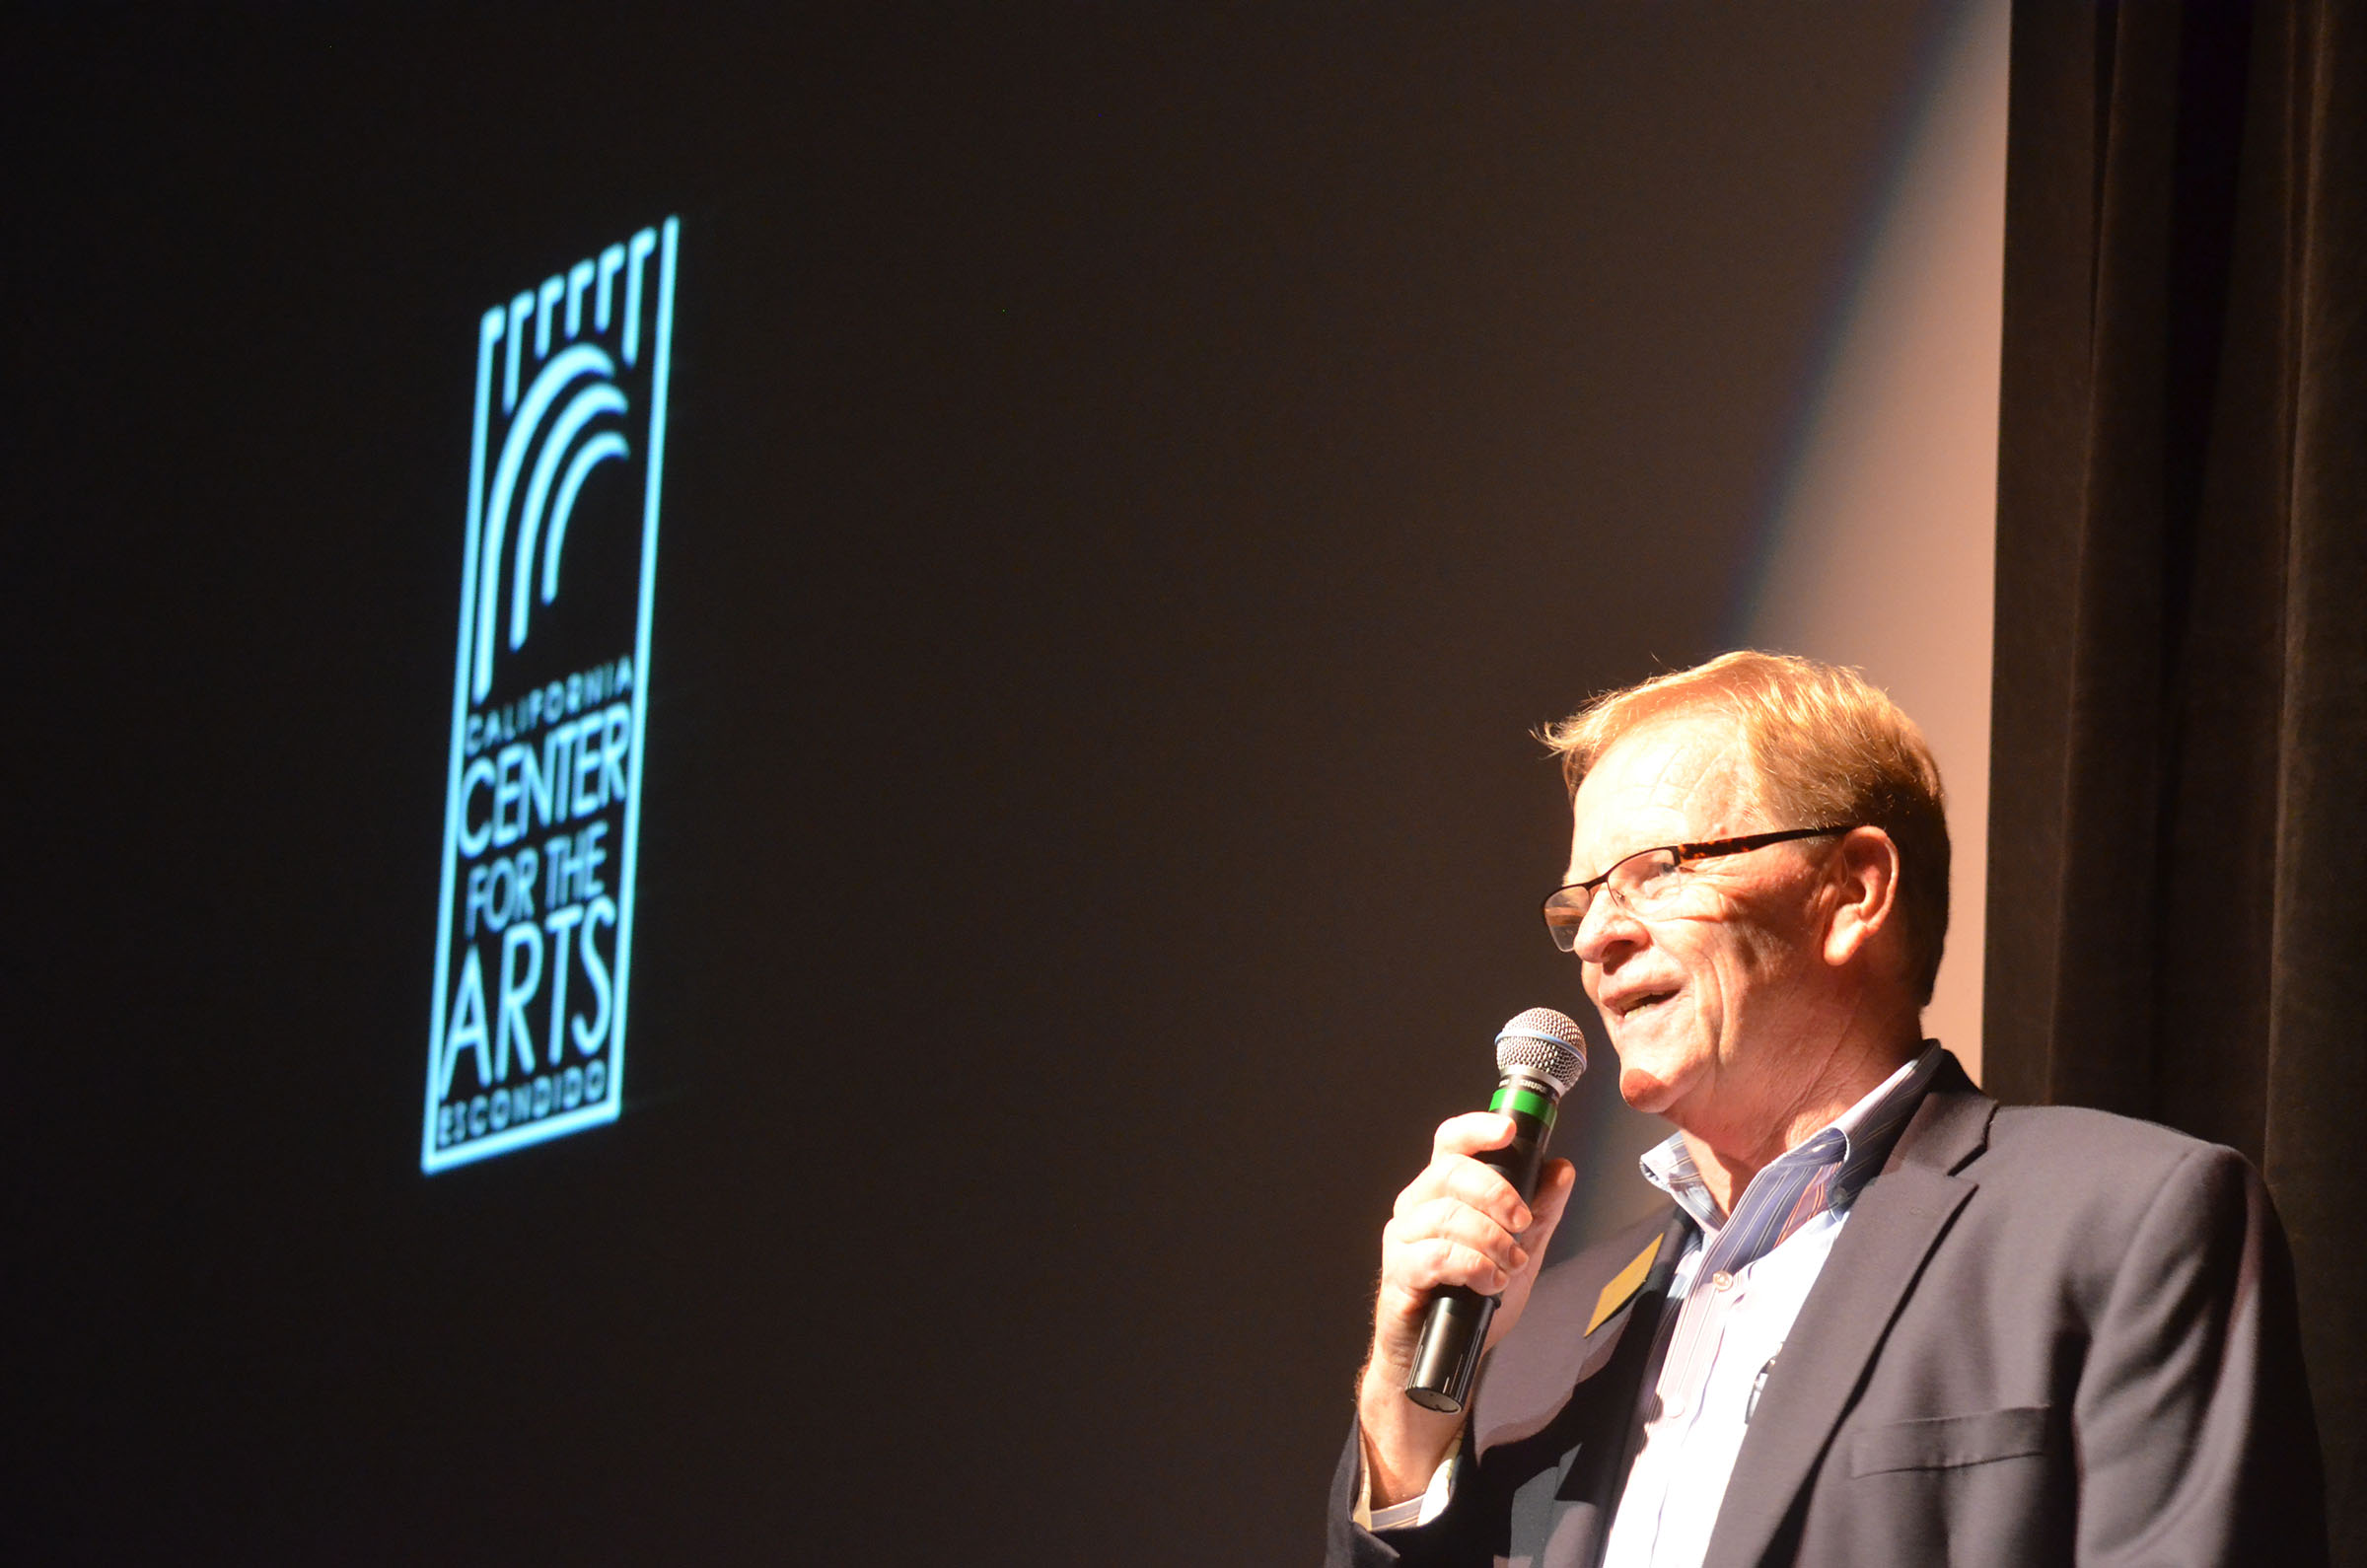 Jerry Van Leeuwen, executive director of the California Center for the Arts, Escondido announces the 2015-16 line up to members during a preview party on June 11. Photo by Tony Cagala